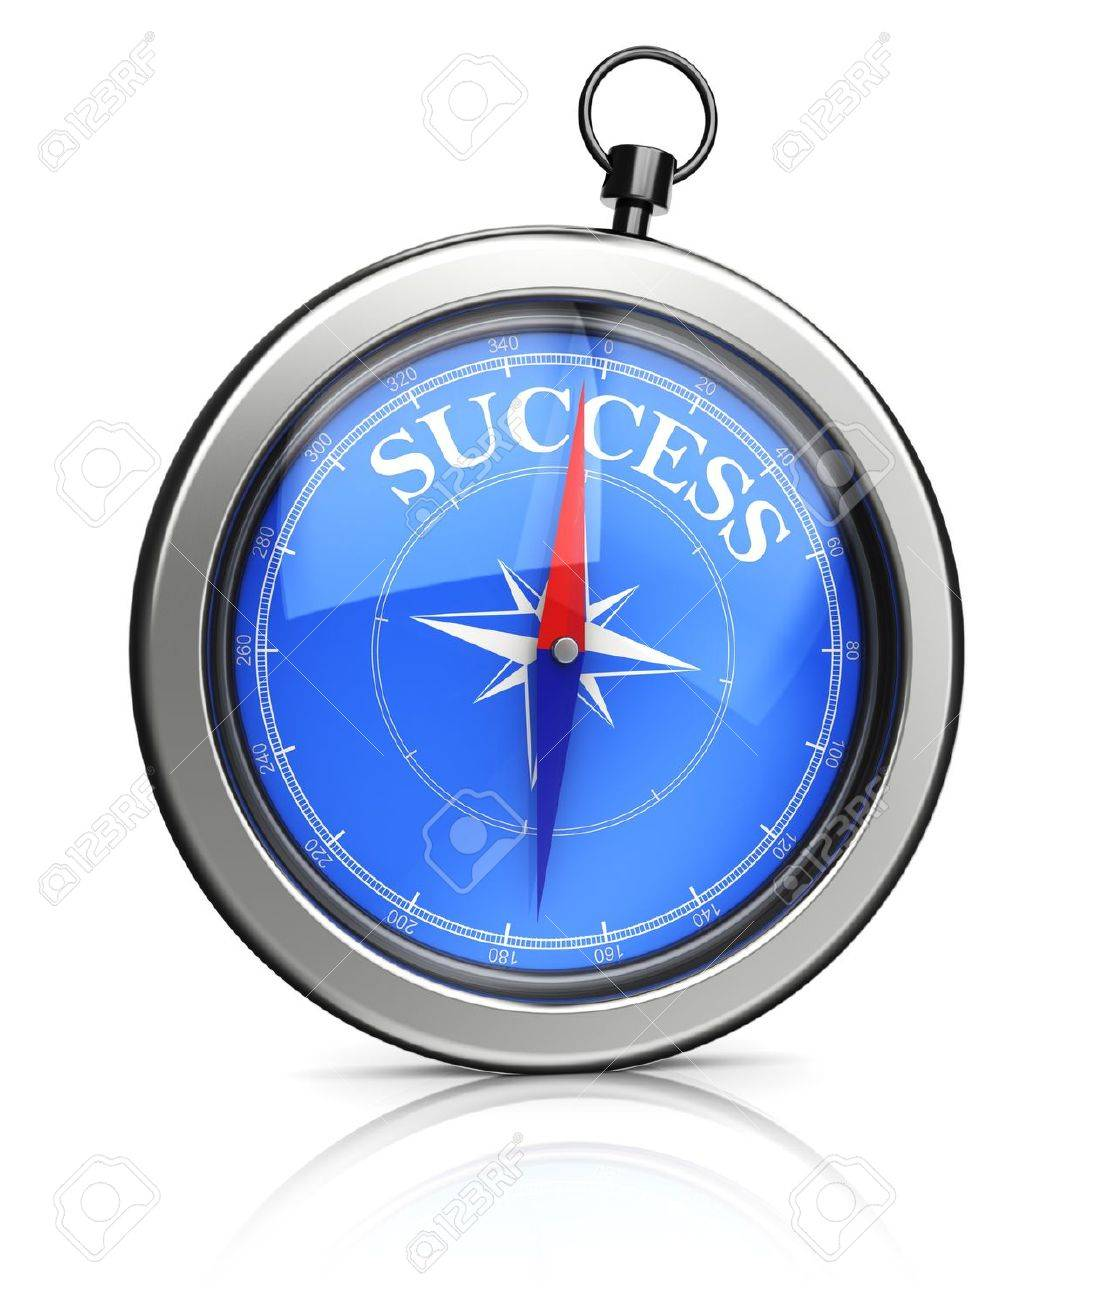 3d illustration of modern compass pointing to success - 20296883